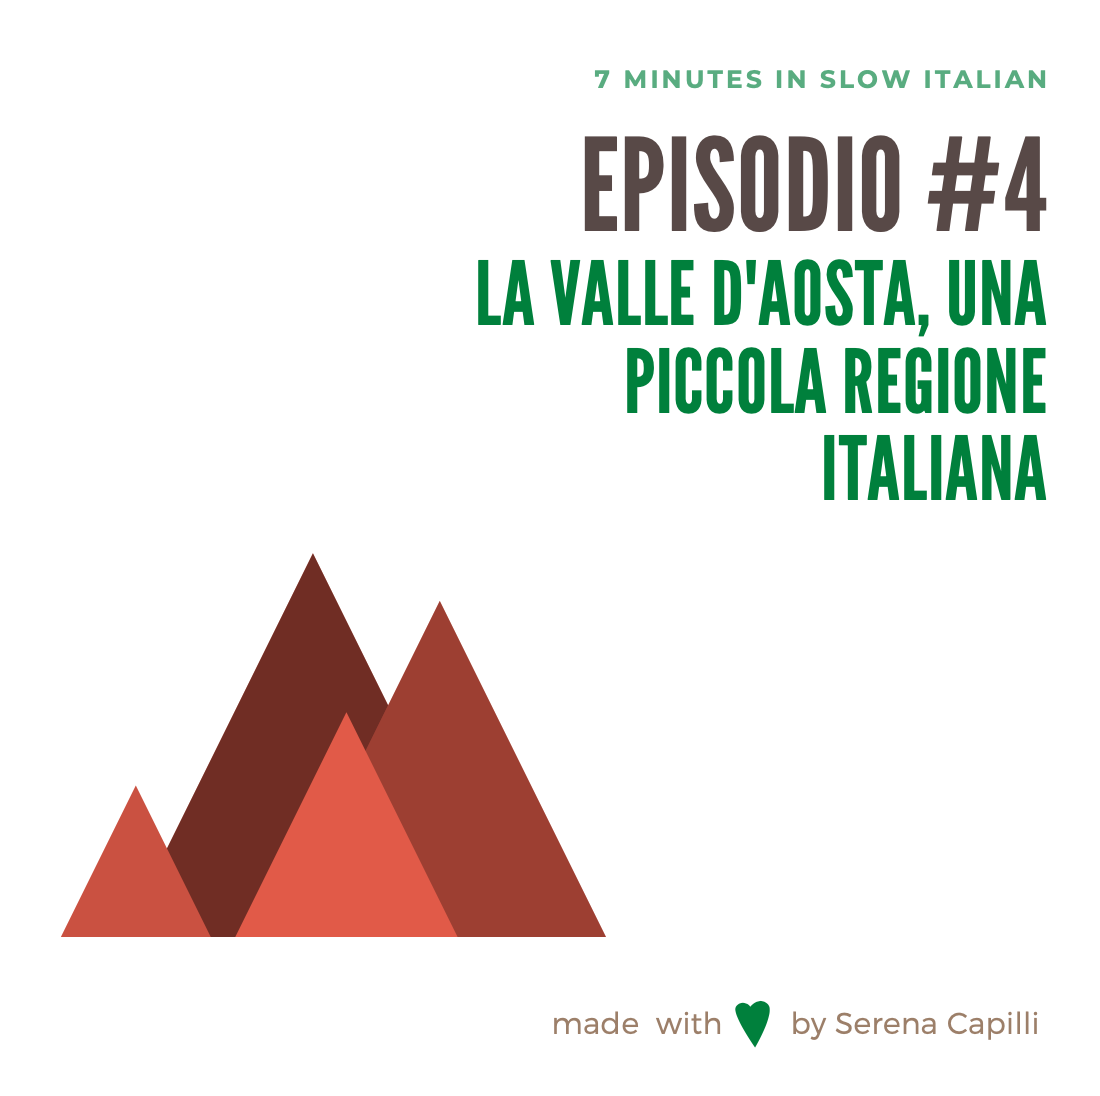 EPISODIO #4 - LA VALLE D'AOSTA